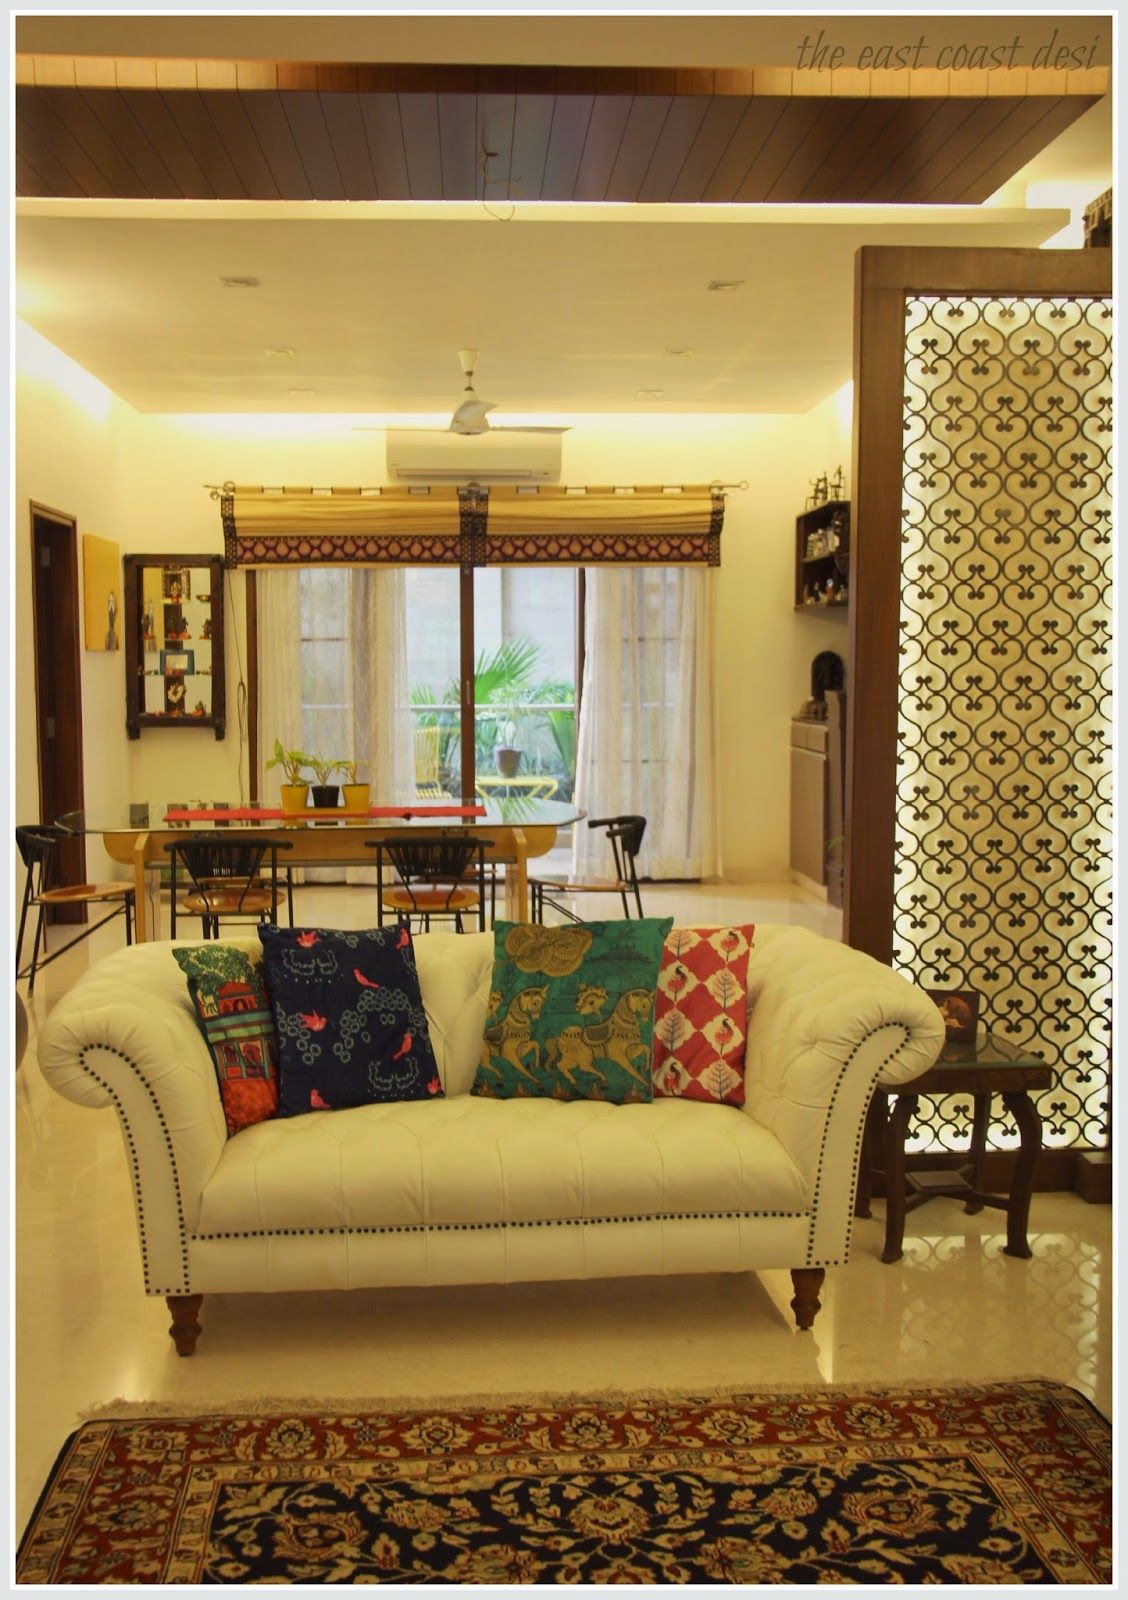 Interior Design Indian The East Coast Desi Masterful Mixing Home Tour Decor